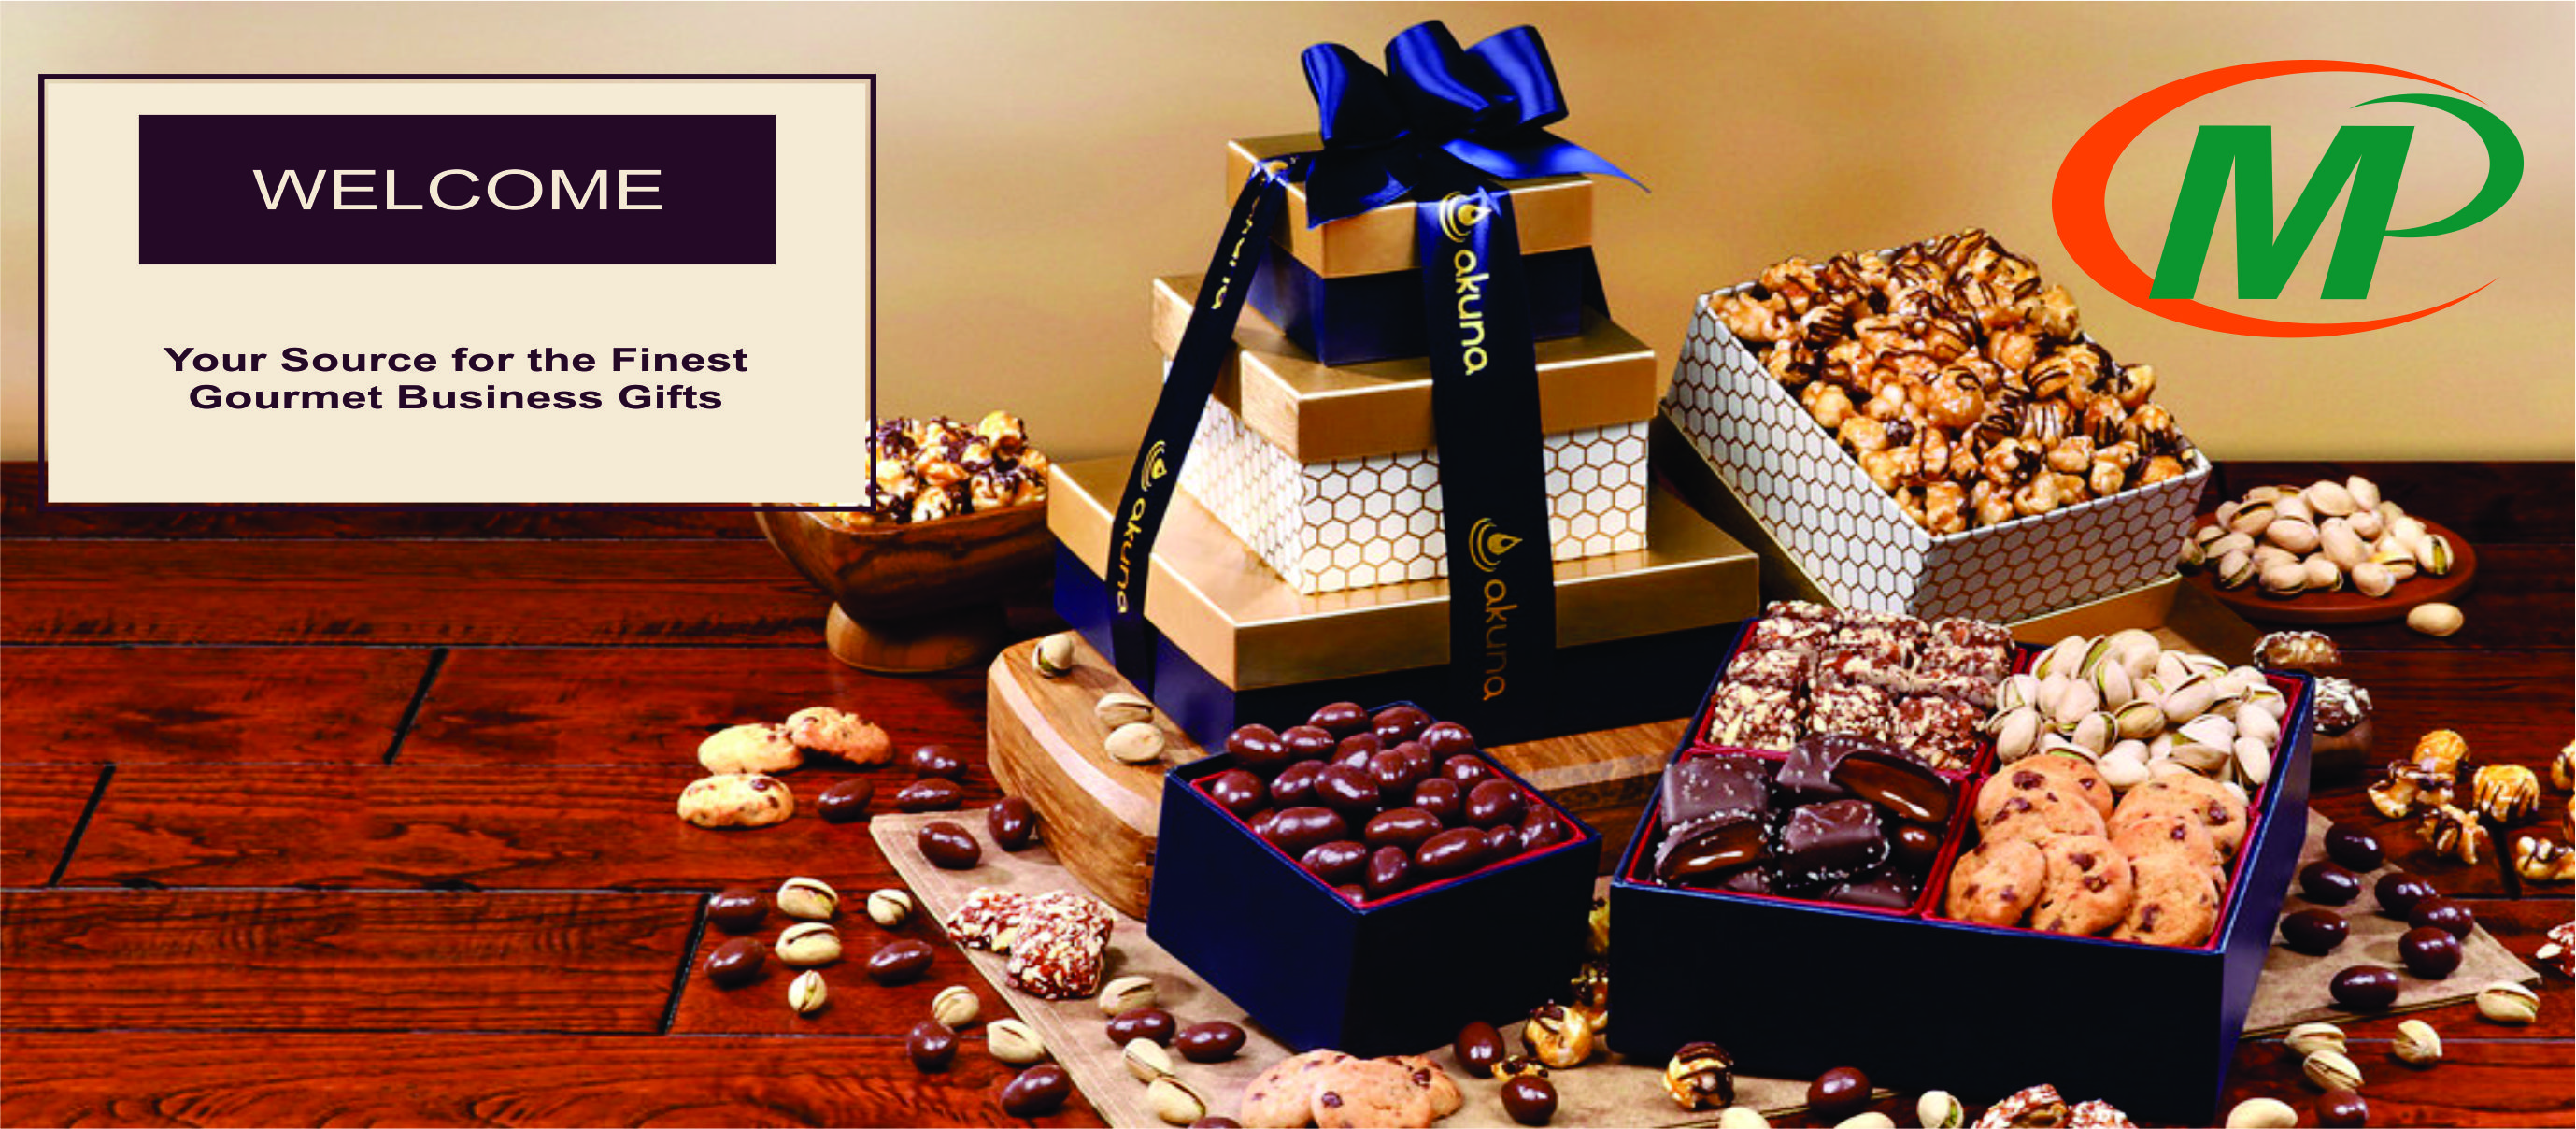 Gourmet Business Gifts